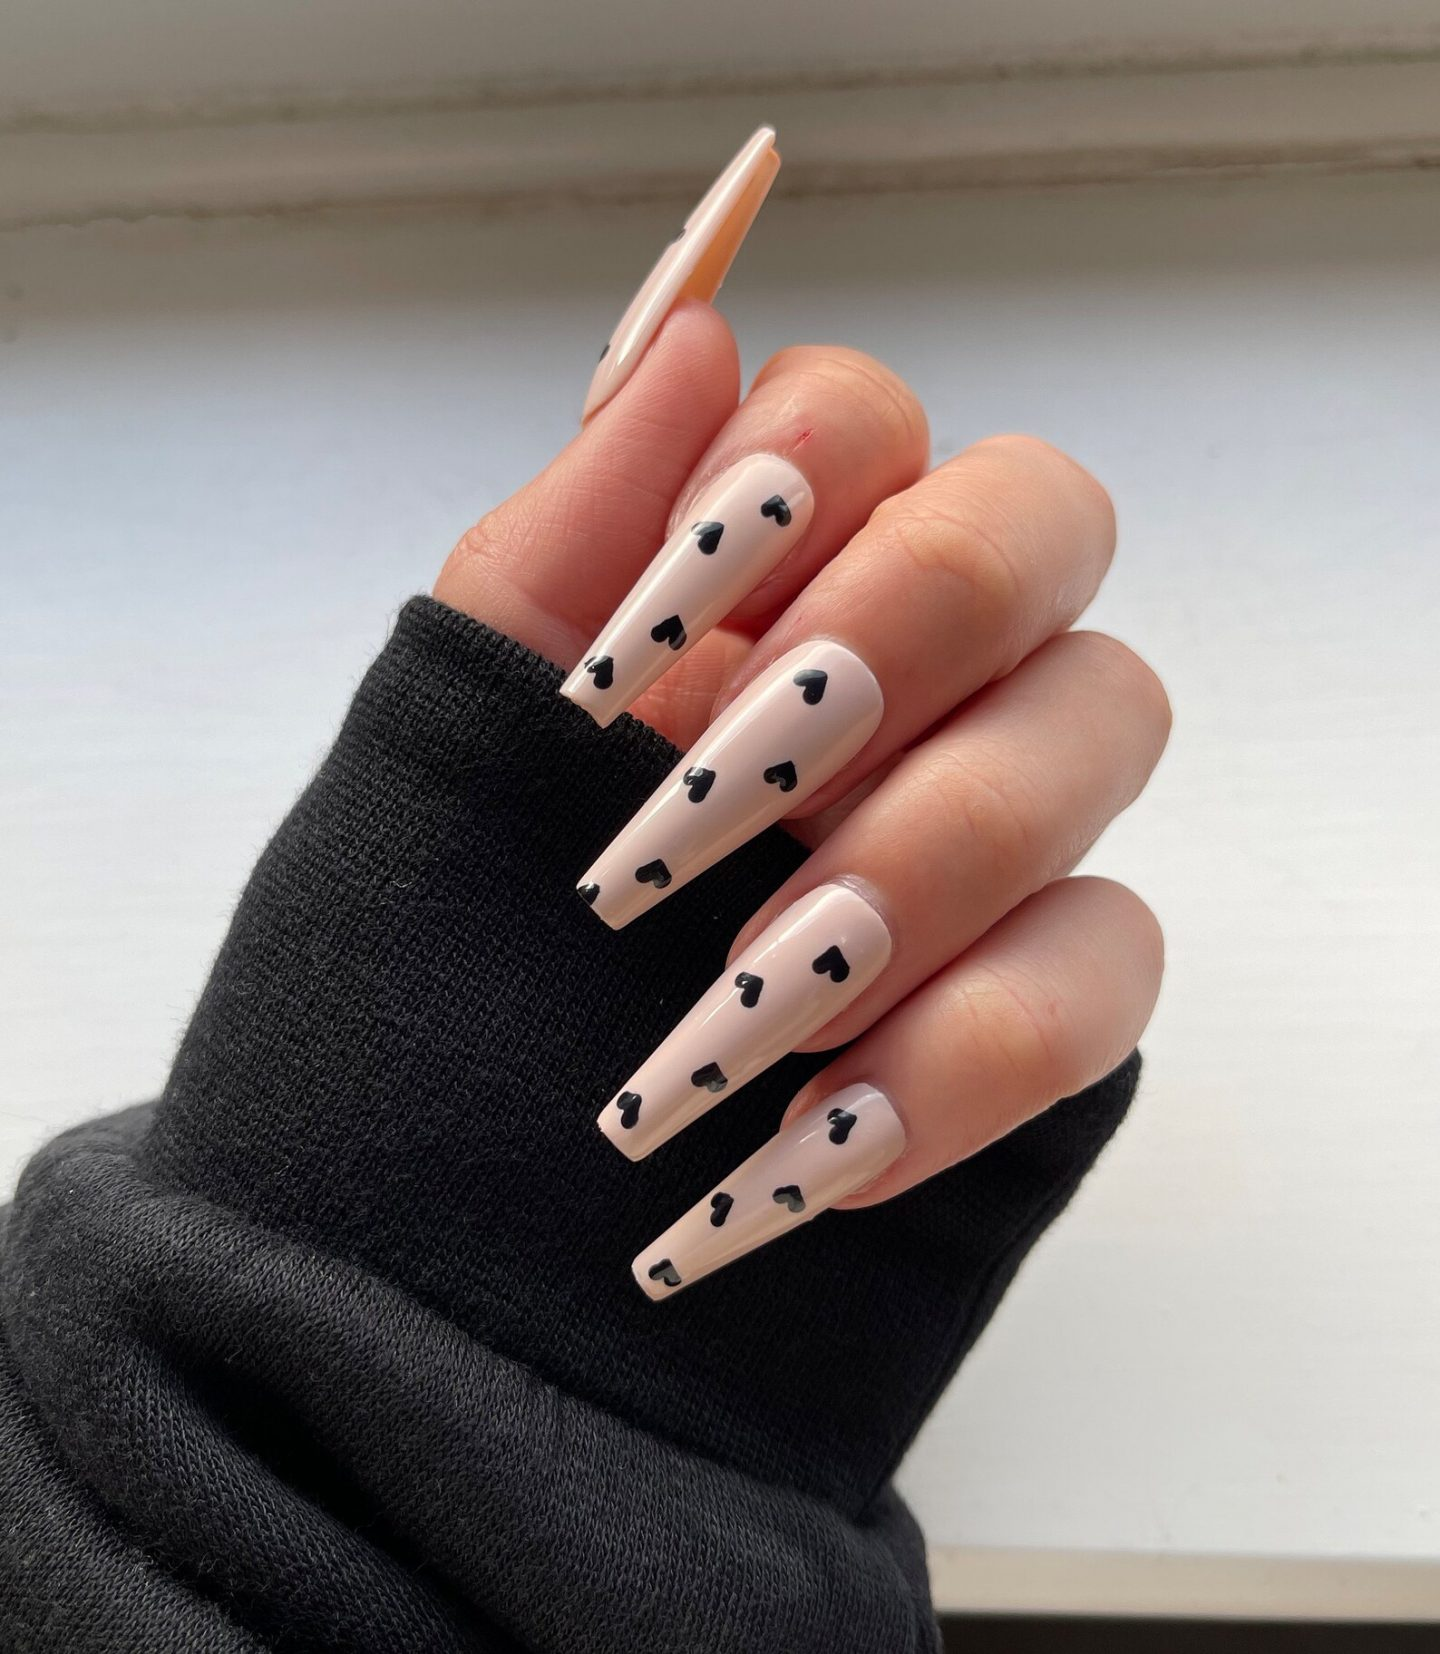 Long nude coffin nails with black hearts